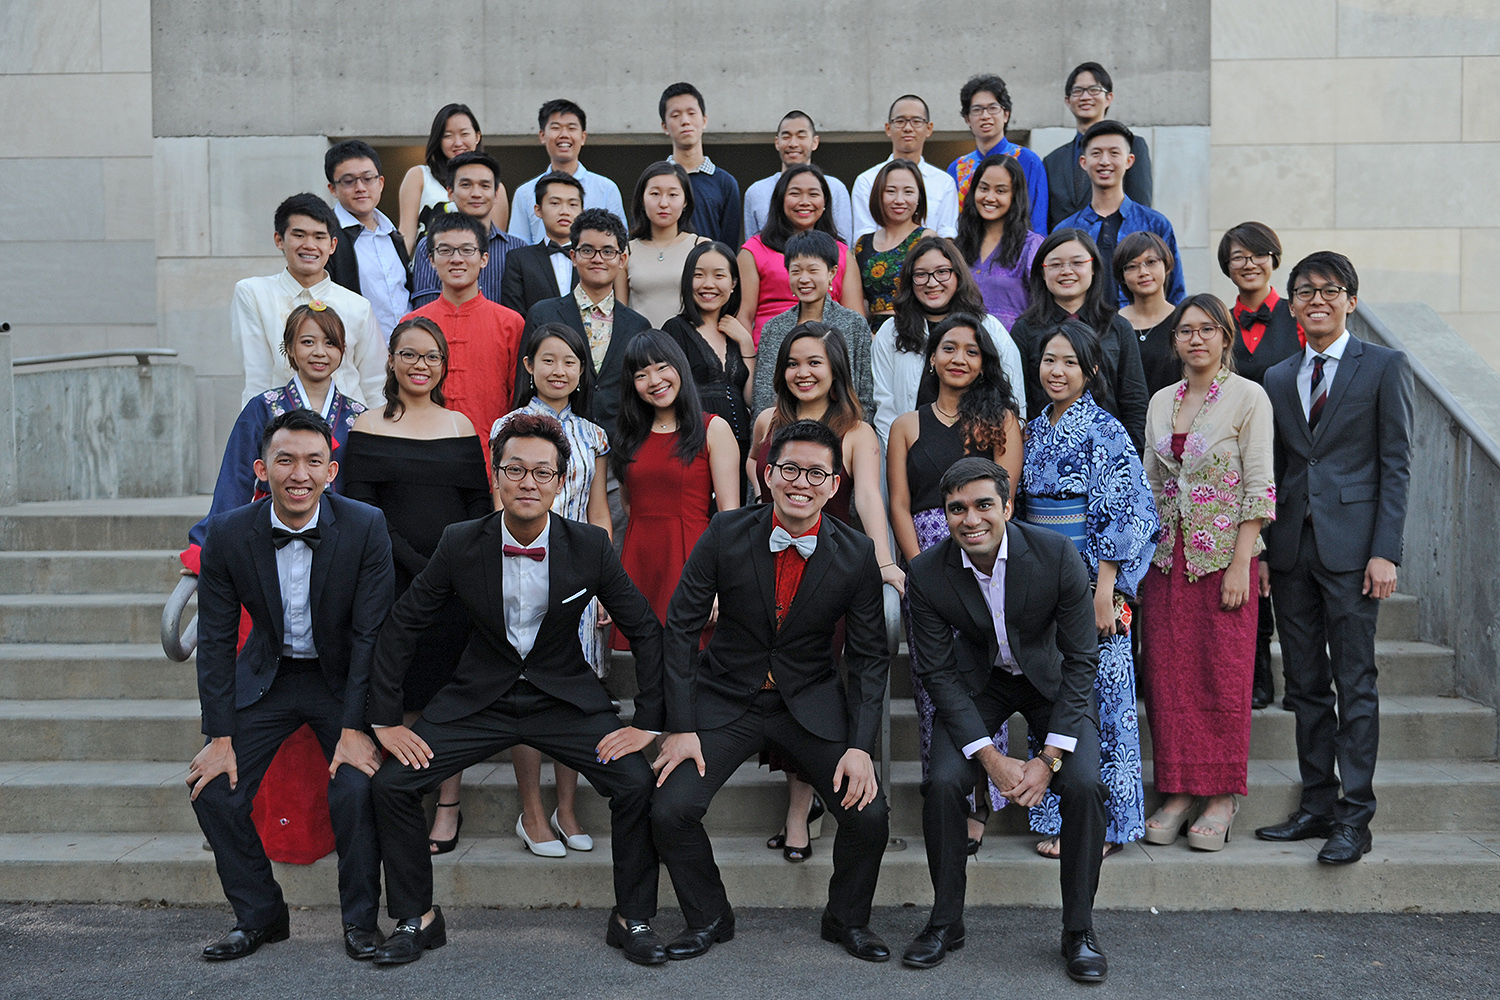 Wesleyann's Freeman Asian Scholars gathered for a group photo on Oct. 7.